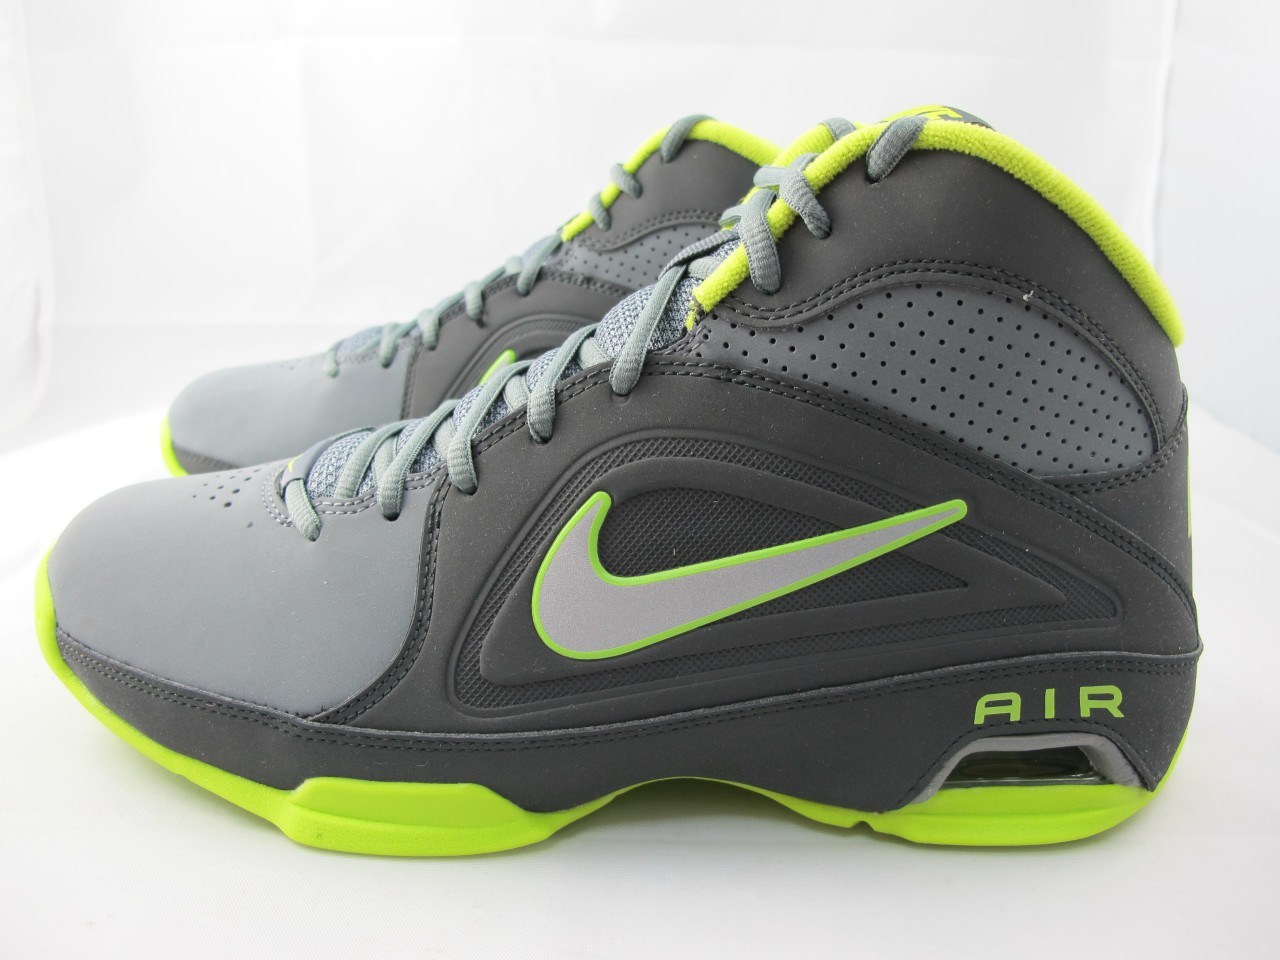 36902d3118e3 Nuevo Para Hombre Nike Air Visi Pro 111 NBK 525745-004 anthract MTLC ...